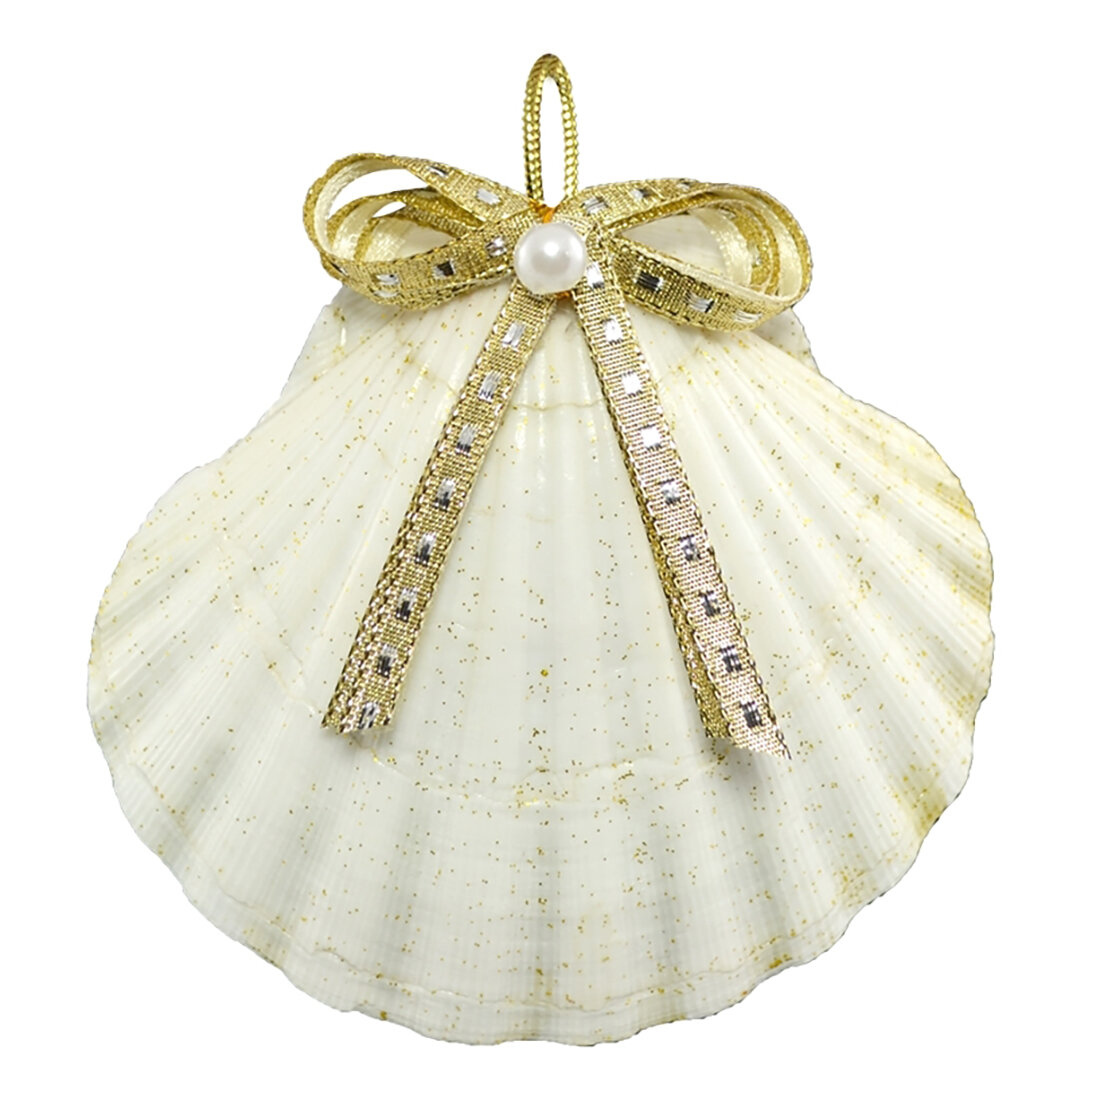 The Holiday Aisle Bow Scallop Hanging Figurine Ornament Wayfair